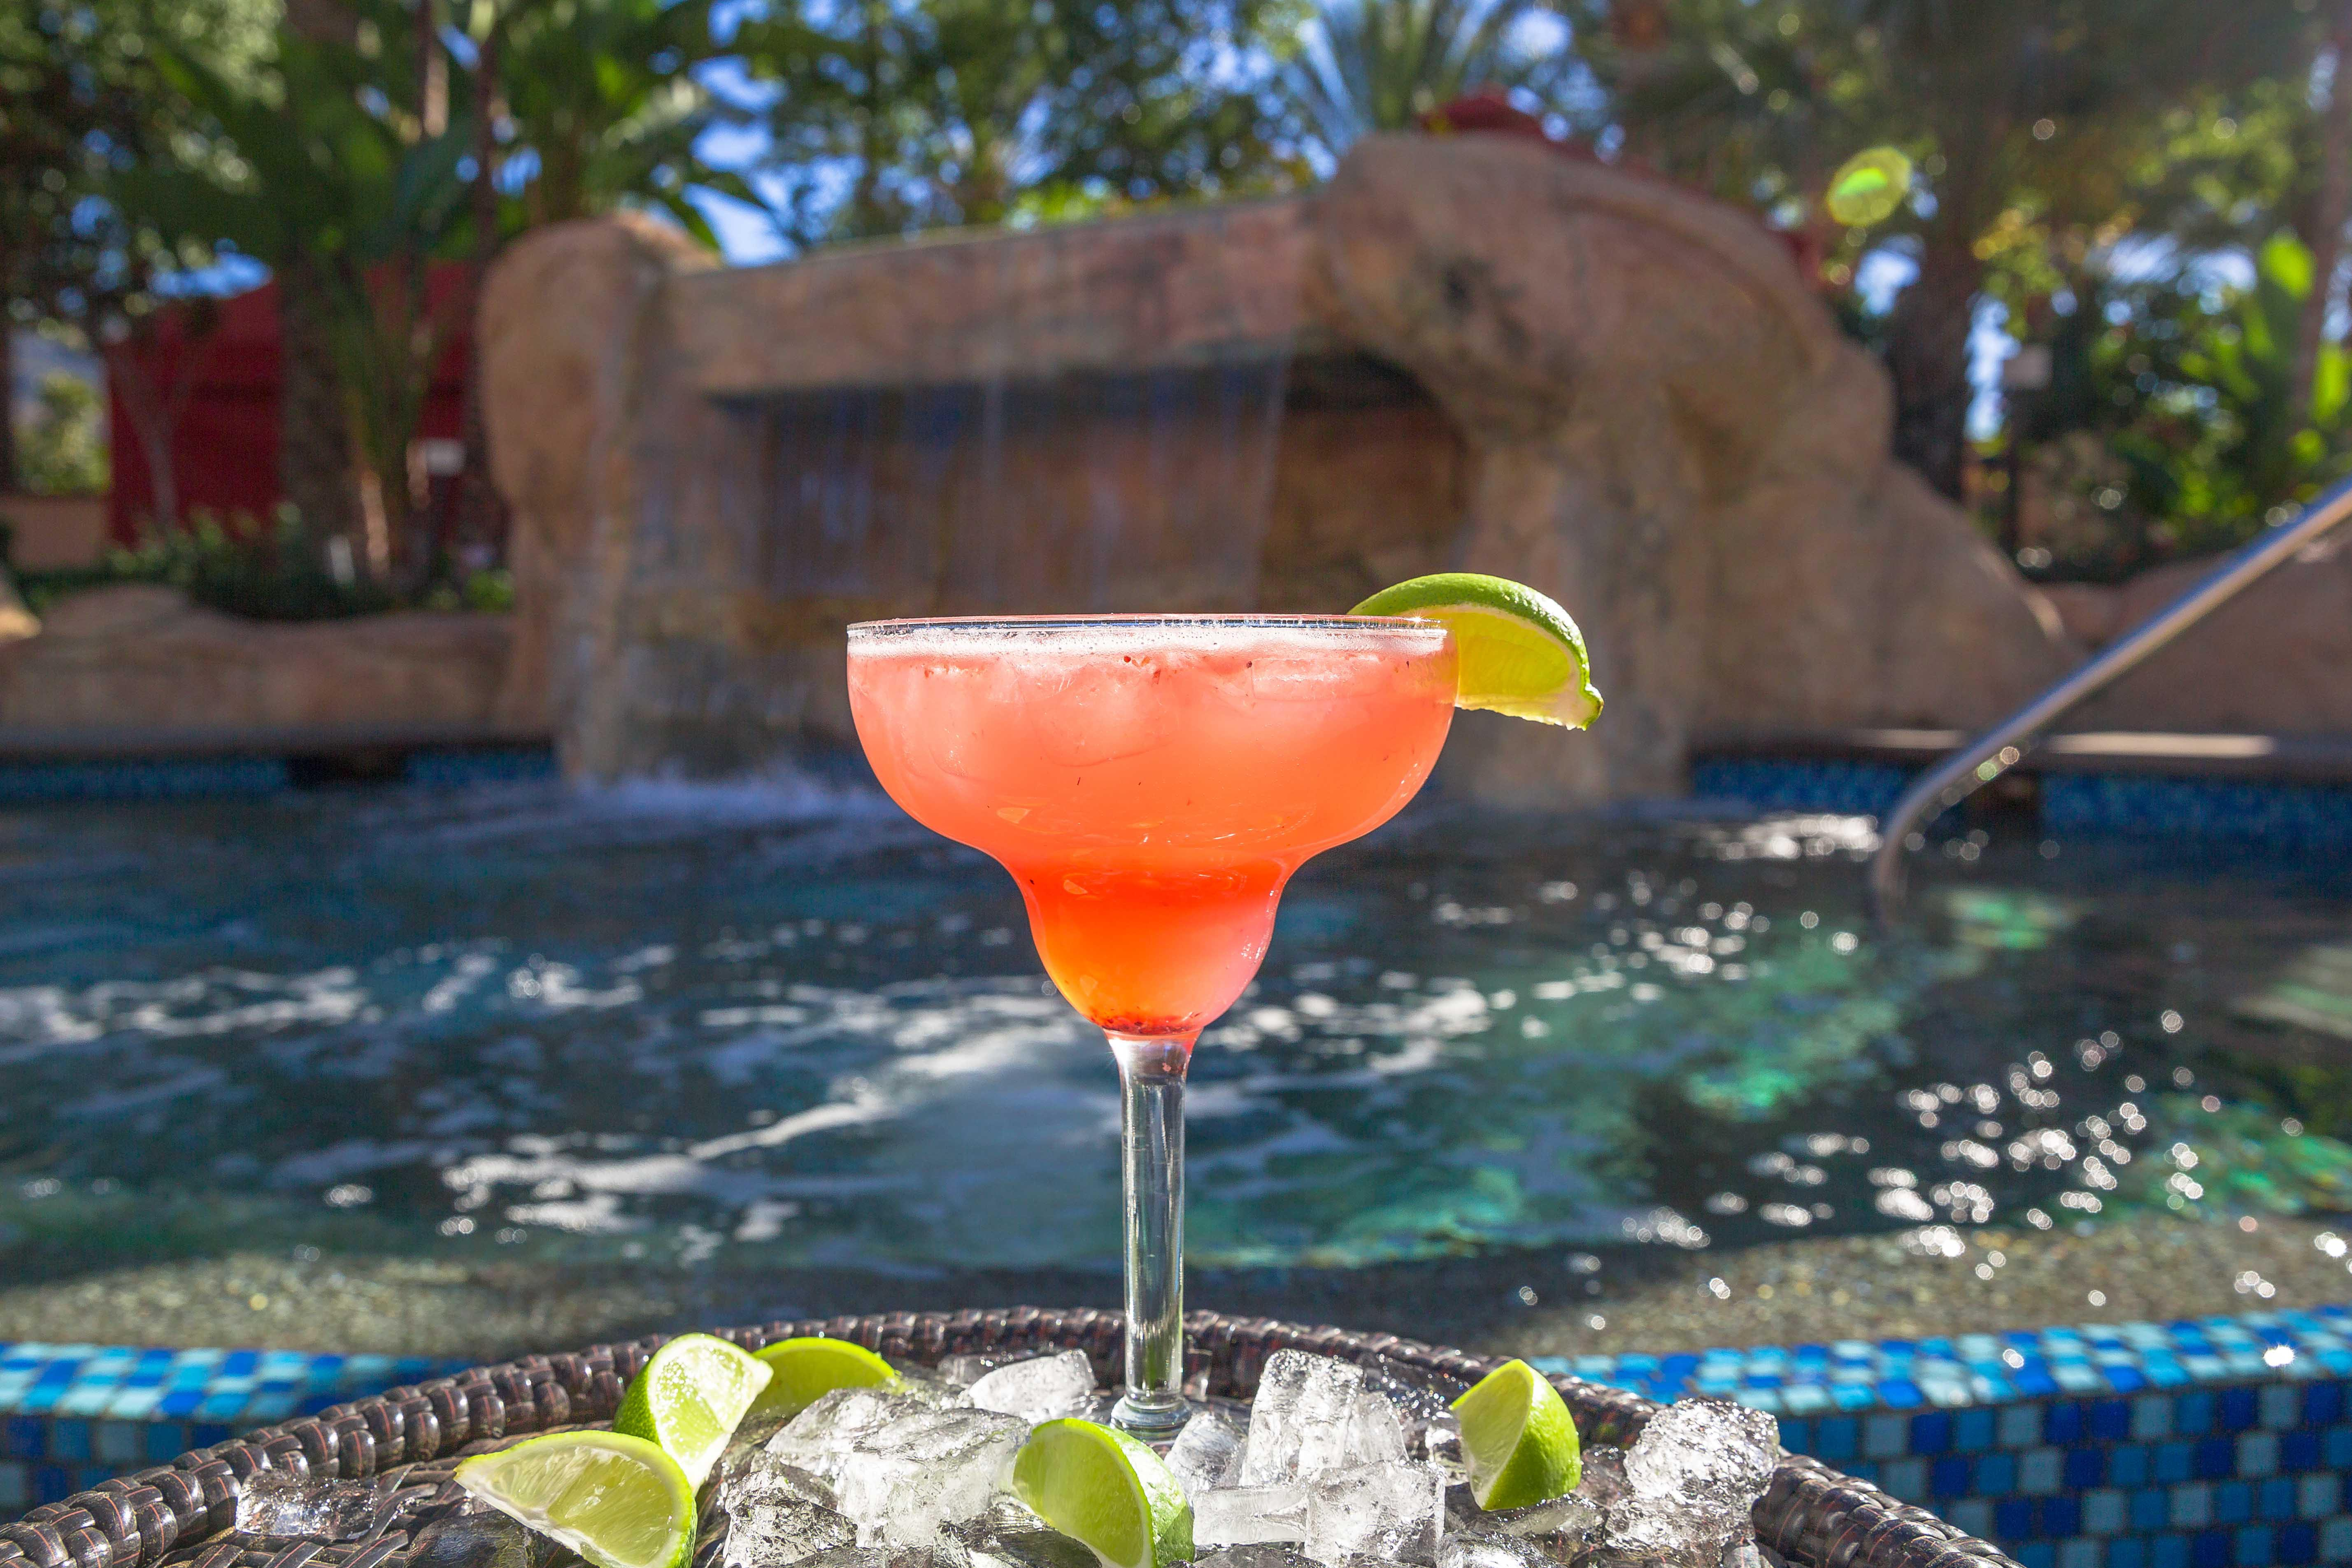 The Strawberry Mule 'rita is like summer in a glass!